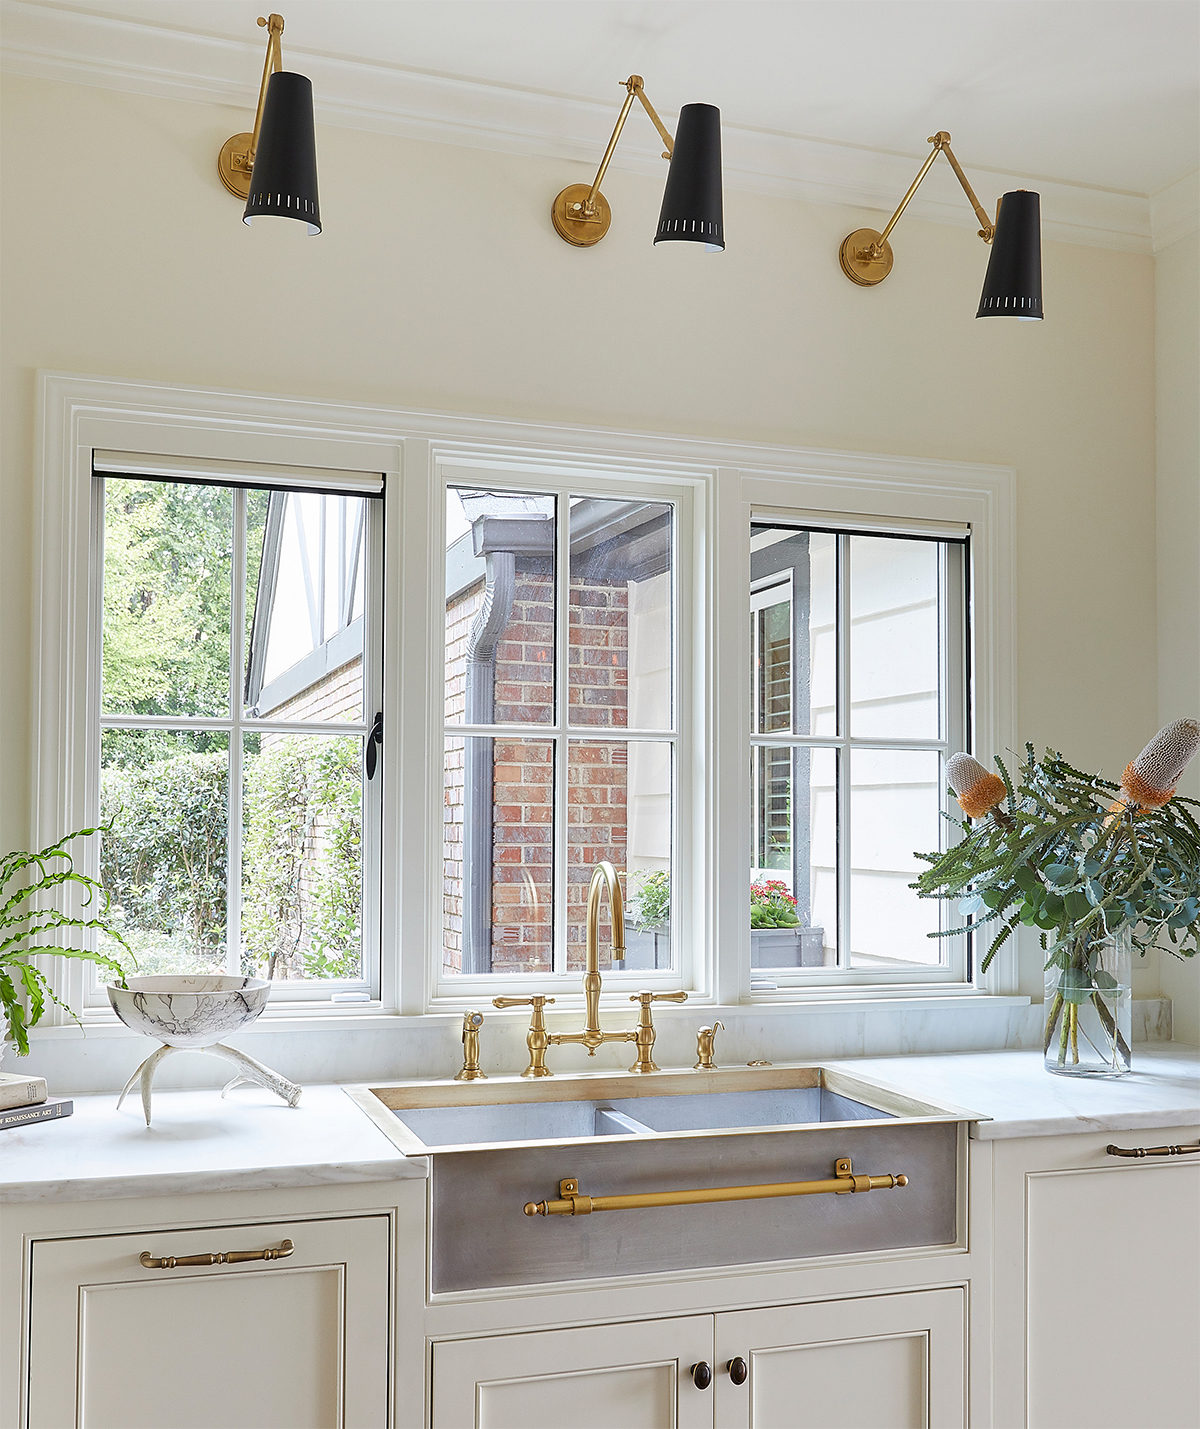 Kitchen Pendants/Sconce